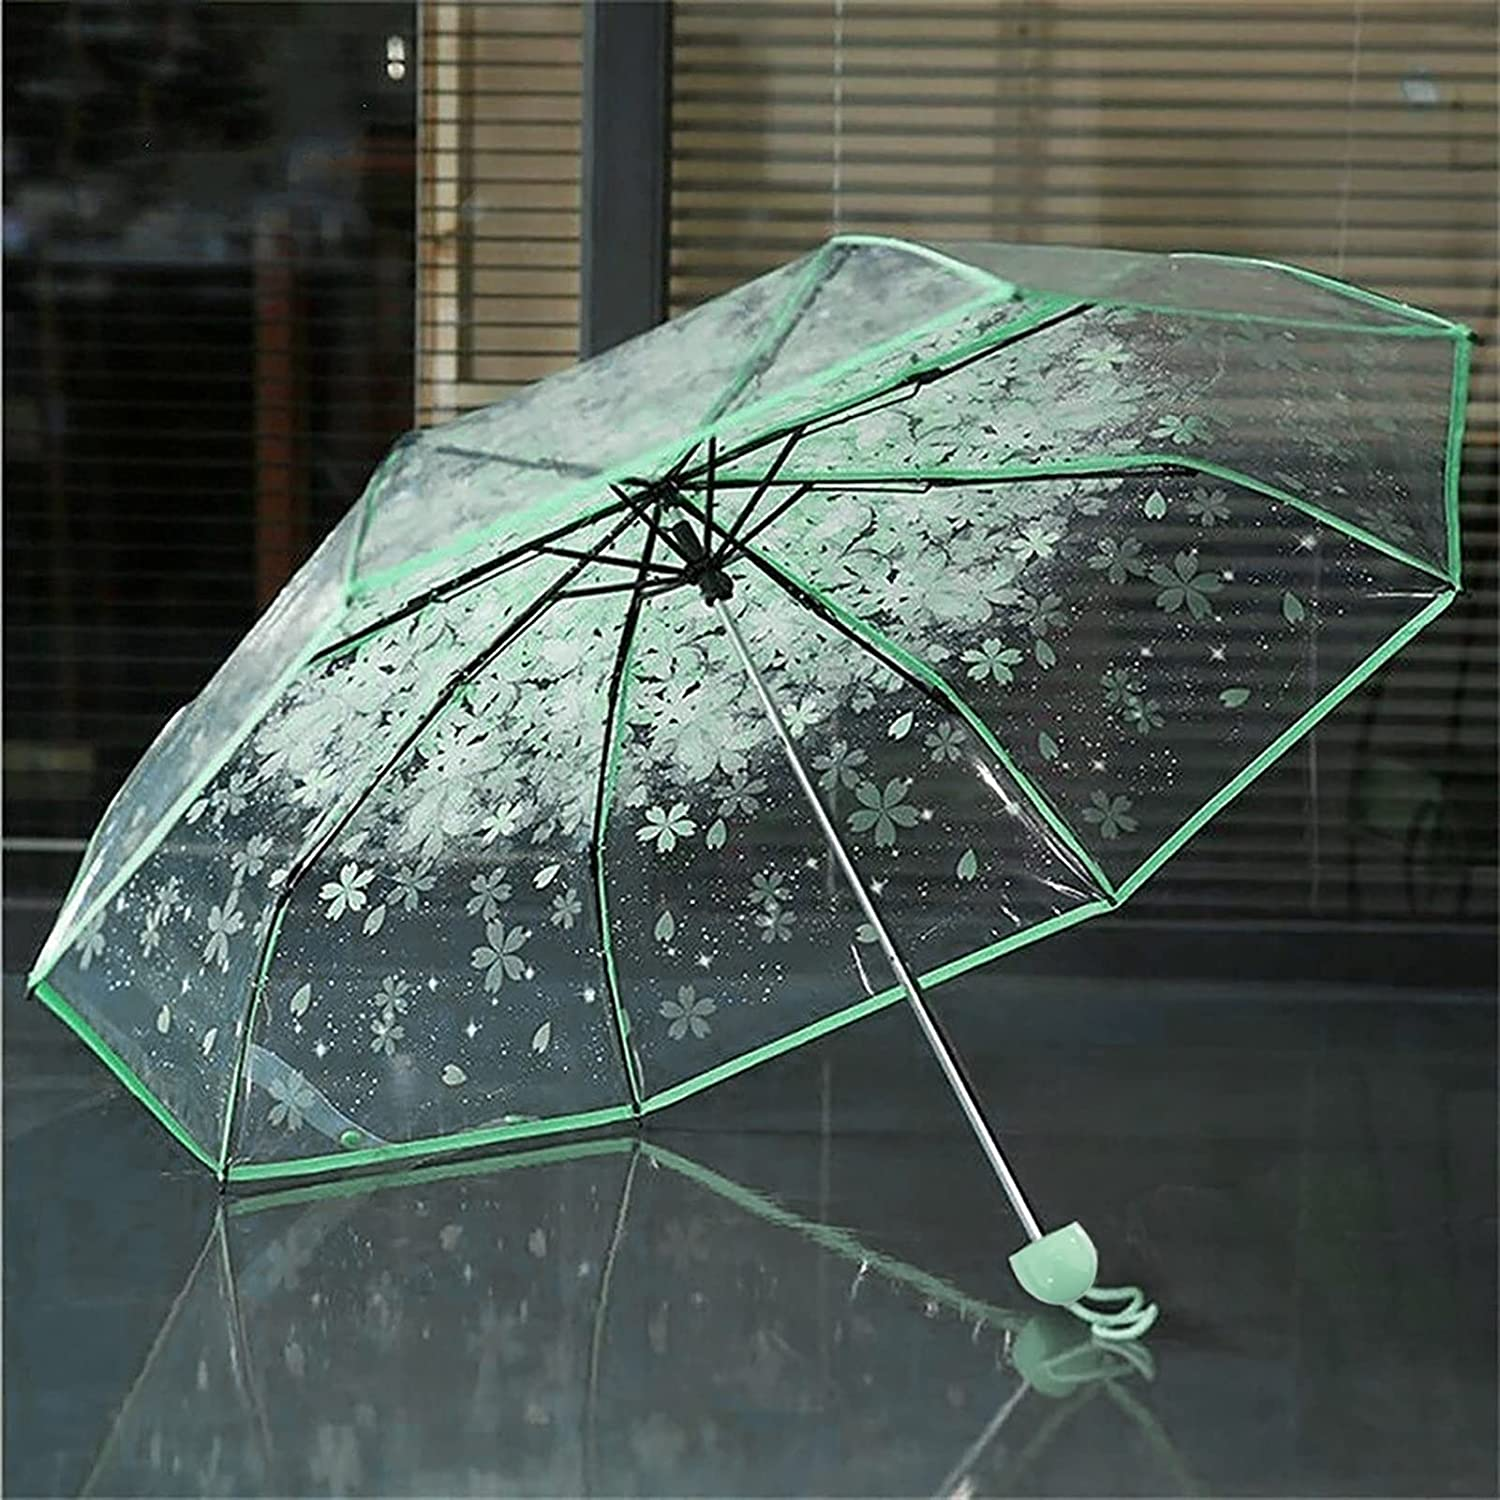 UIOP Women's Rain Umbrella Multicolor Large-scale sale Clear Transparent Cherry Selling and selling B